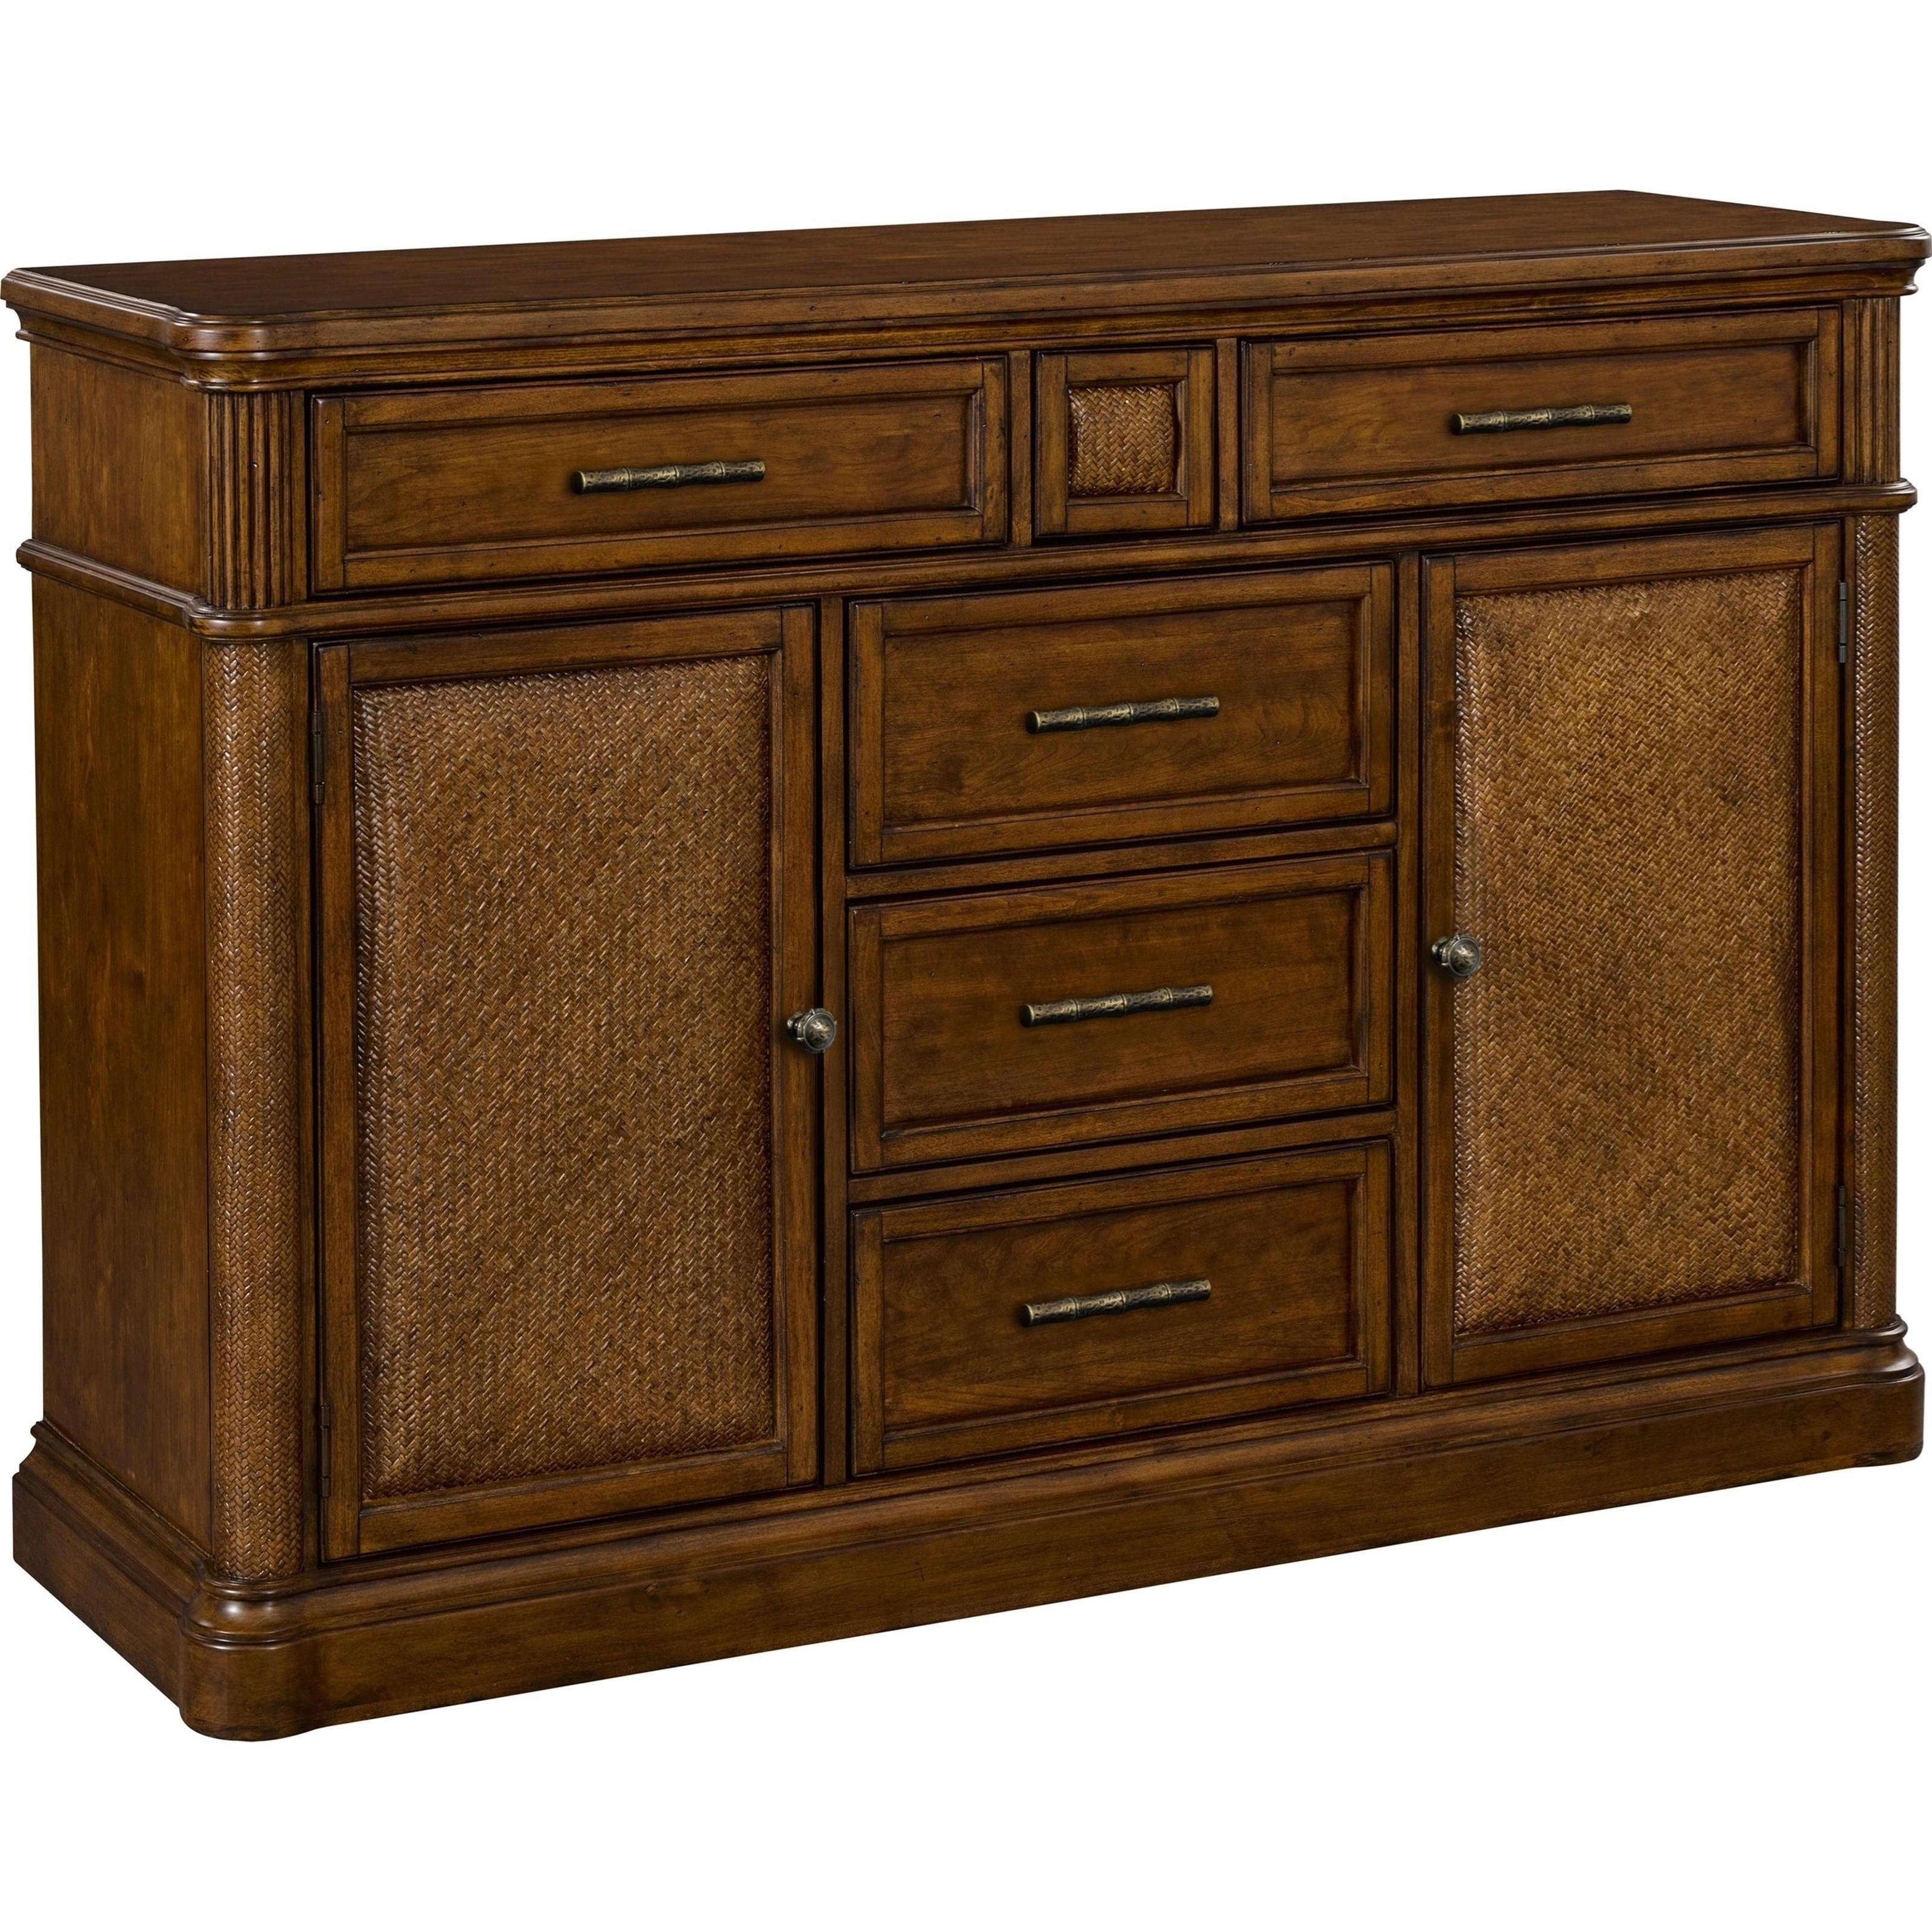 Broyhill Furniture Amalie Bay 4548 513 5 Drawer Sideboard